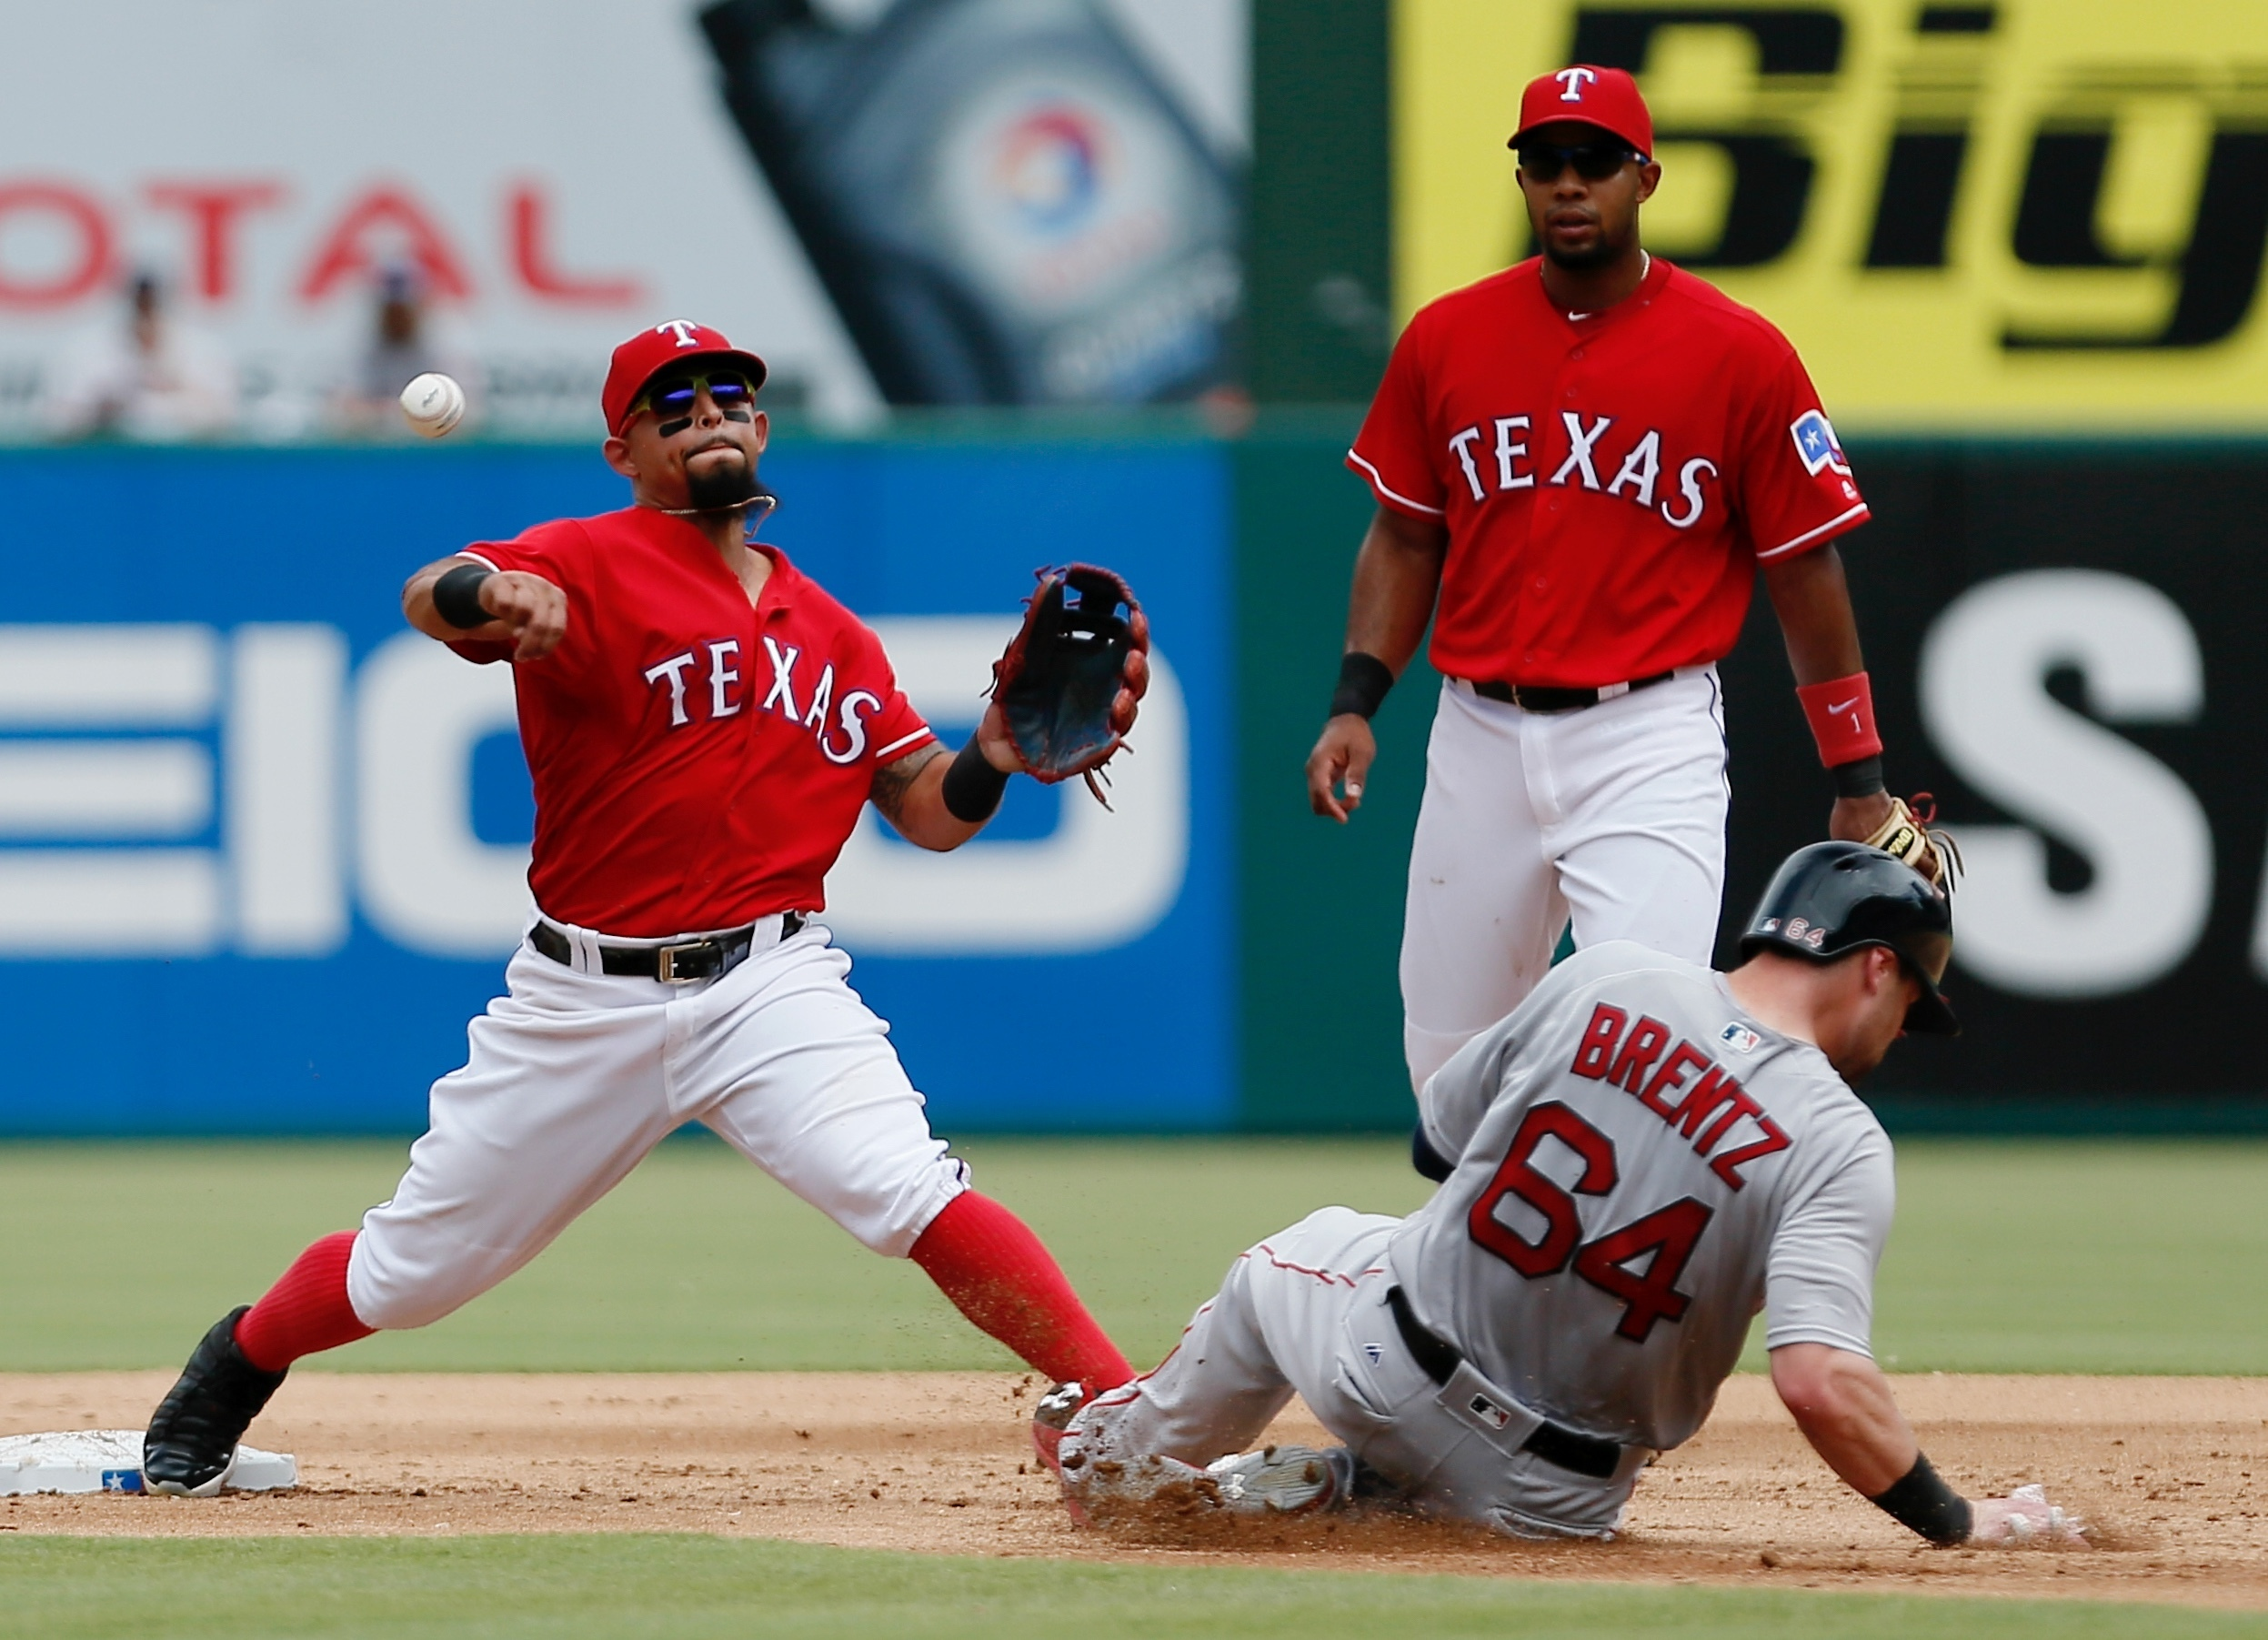 Texas Rangers shortstop Elvis Andrus, top right, looks on as second baseman Rougned Odor, left, throws to first for a double play forcing out Boston Red Sox's Bryce Brentz (64) and Travis Shaw, during the second inning of a baseball game Sunday, June 26,